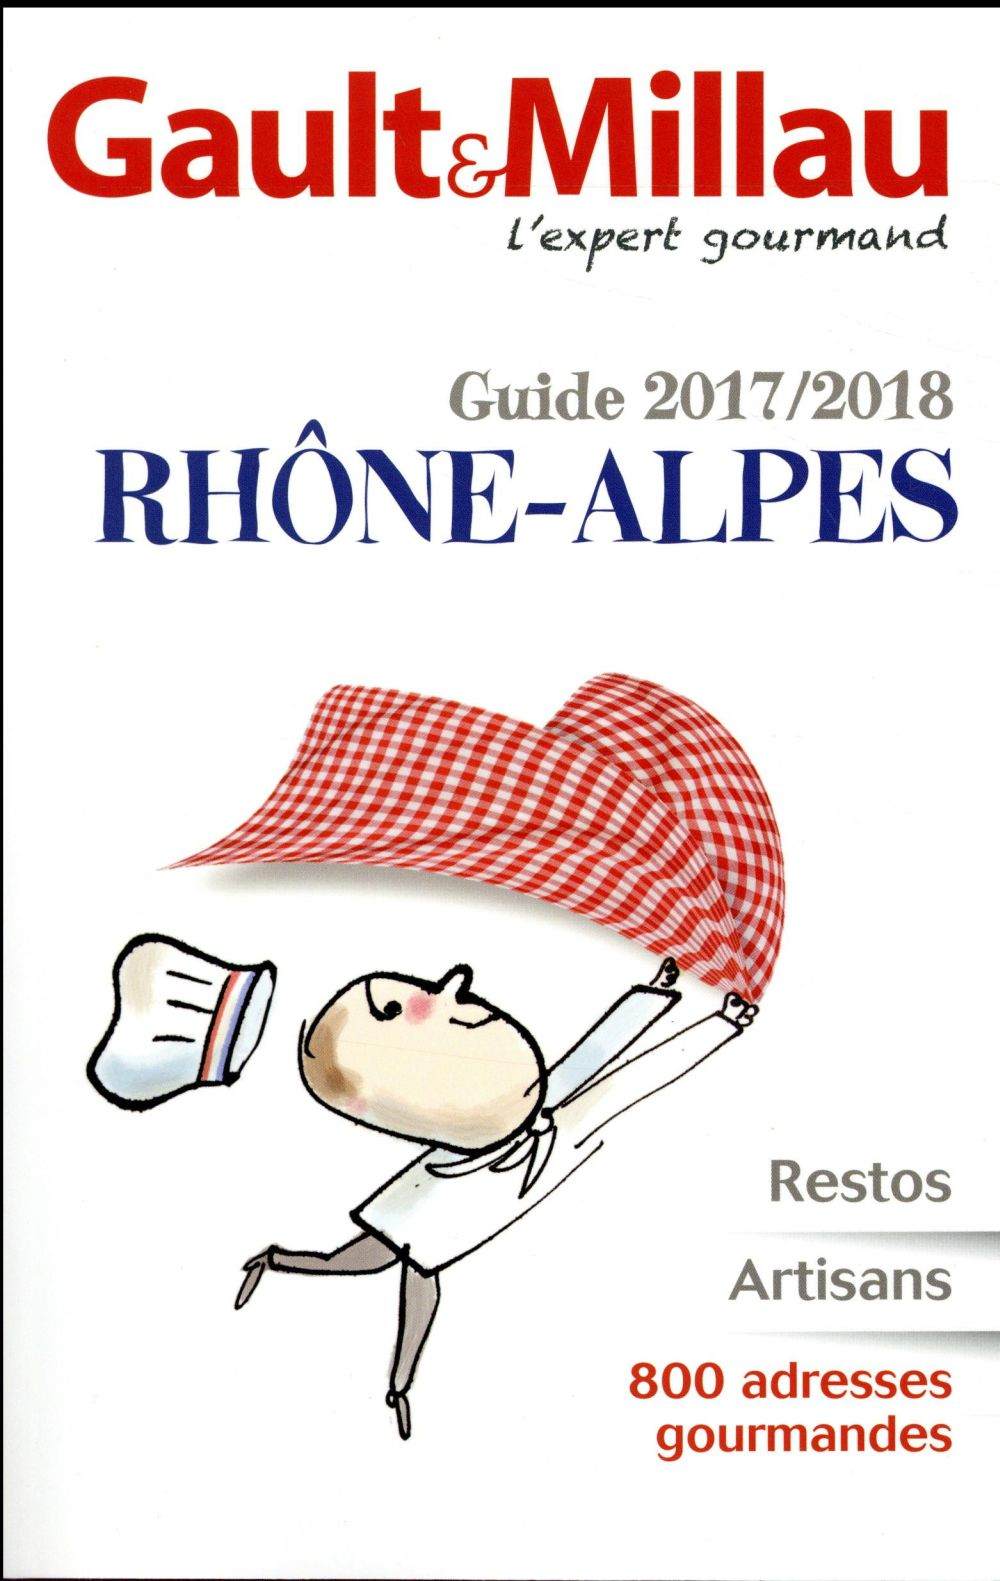 GUIDE RHONE-ALPES 2017/2018